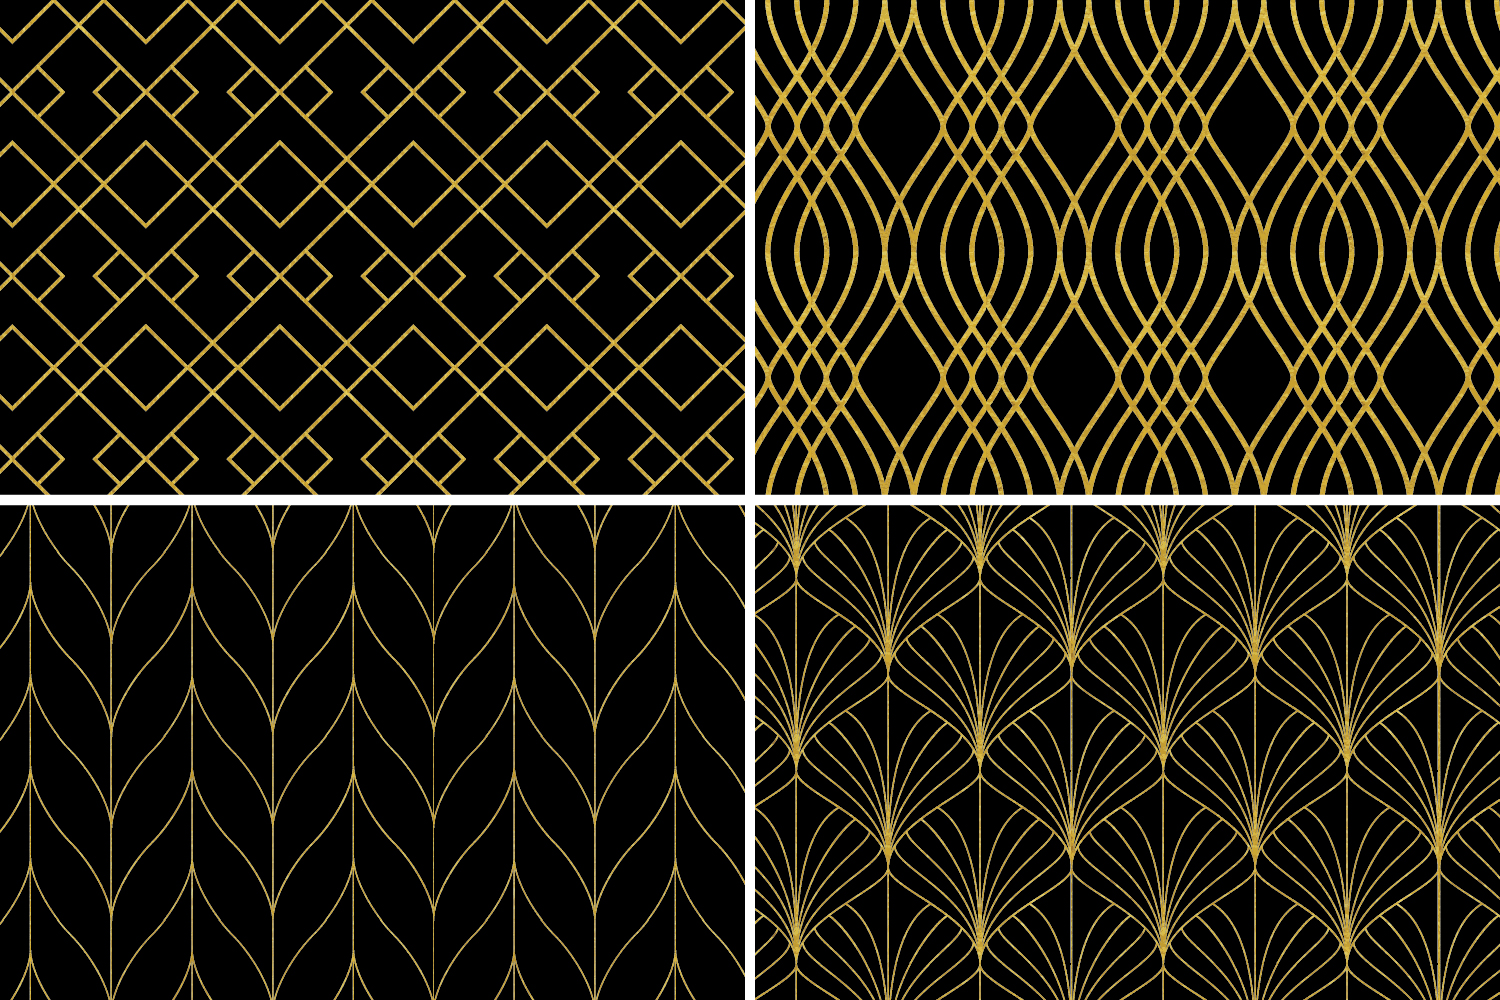 8 Seamless Art Deco Patterns - Black & Gold Set 1 example image 6